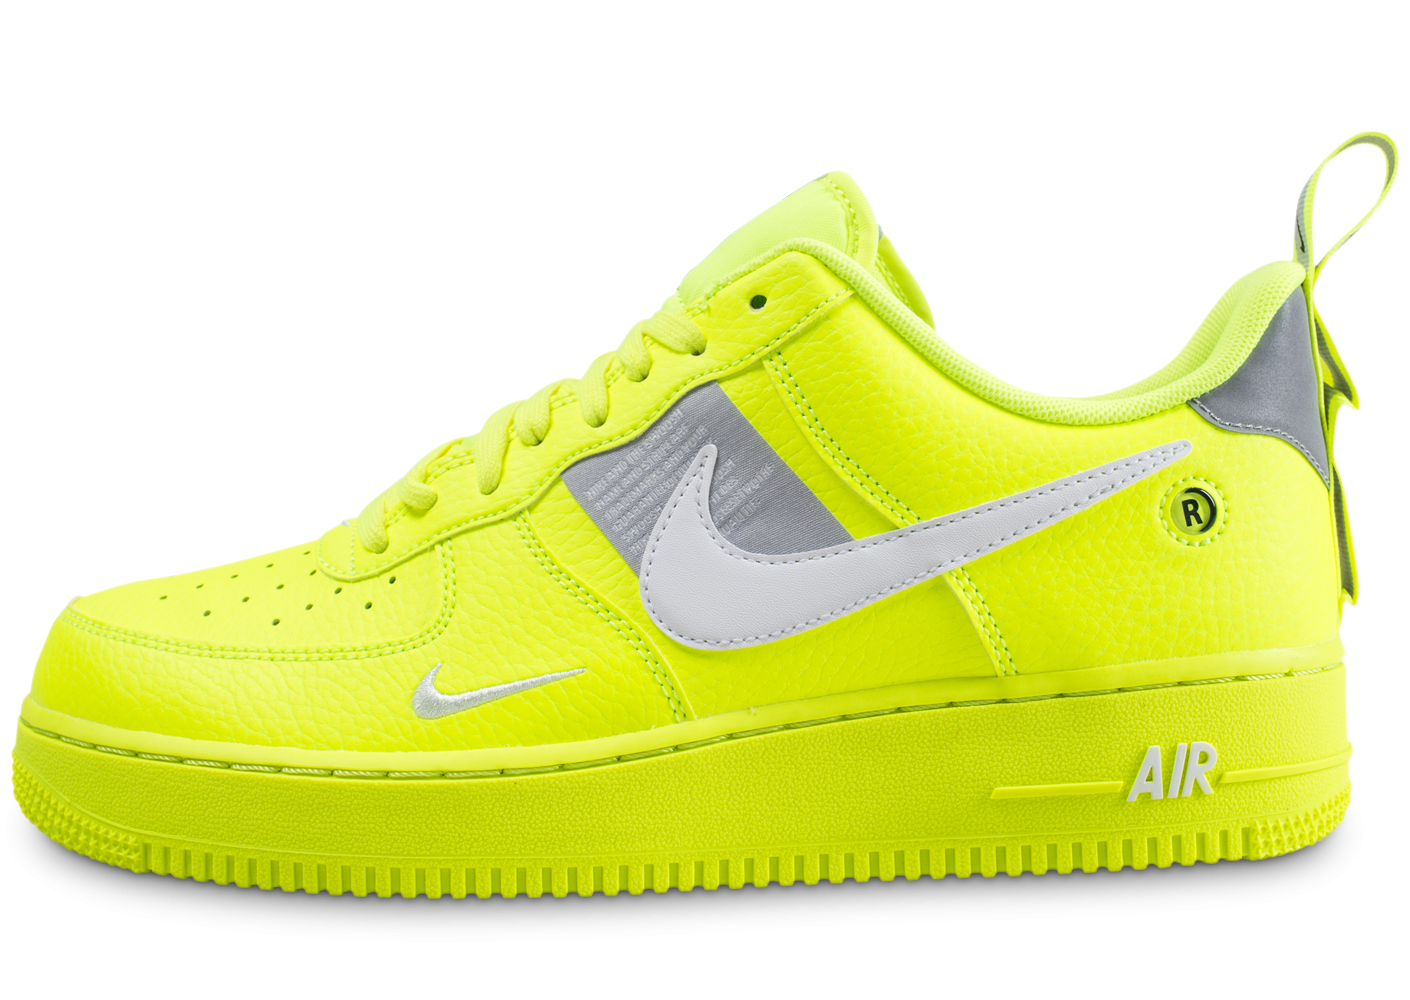 Nike Air Force 1 '07 LV8 Utility Néon Jaune